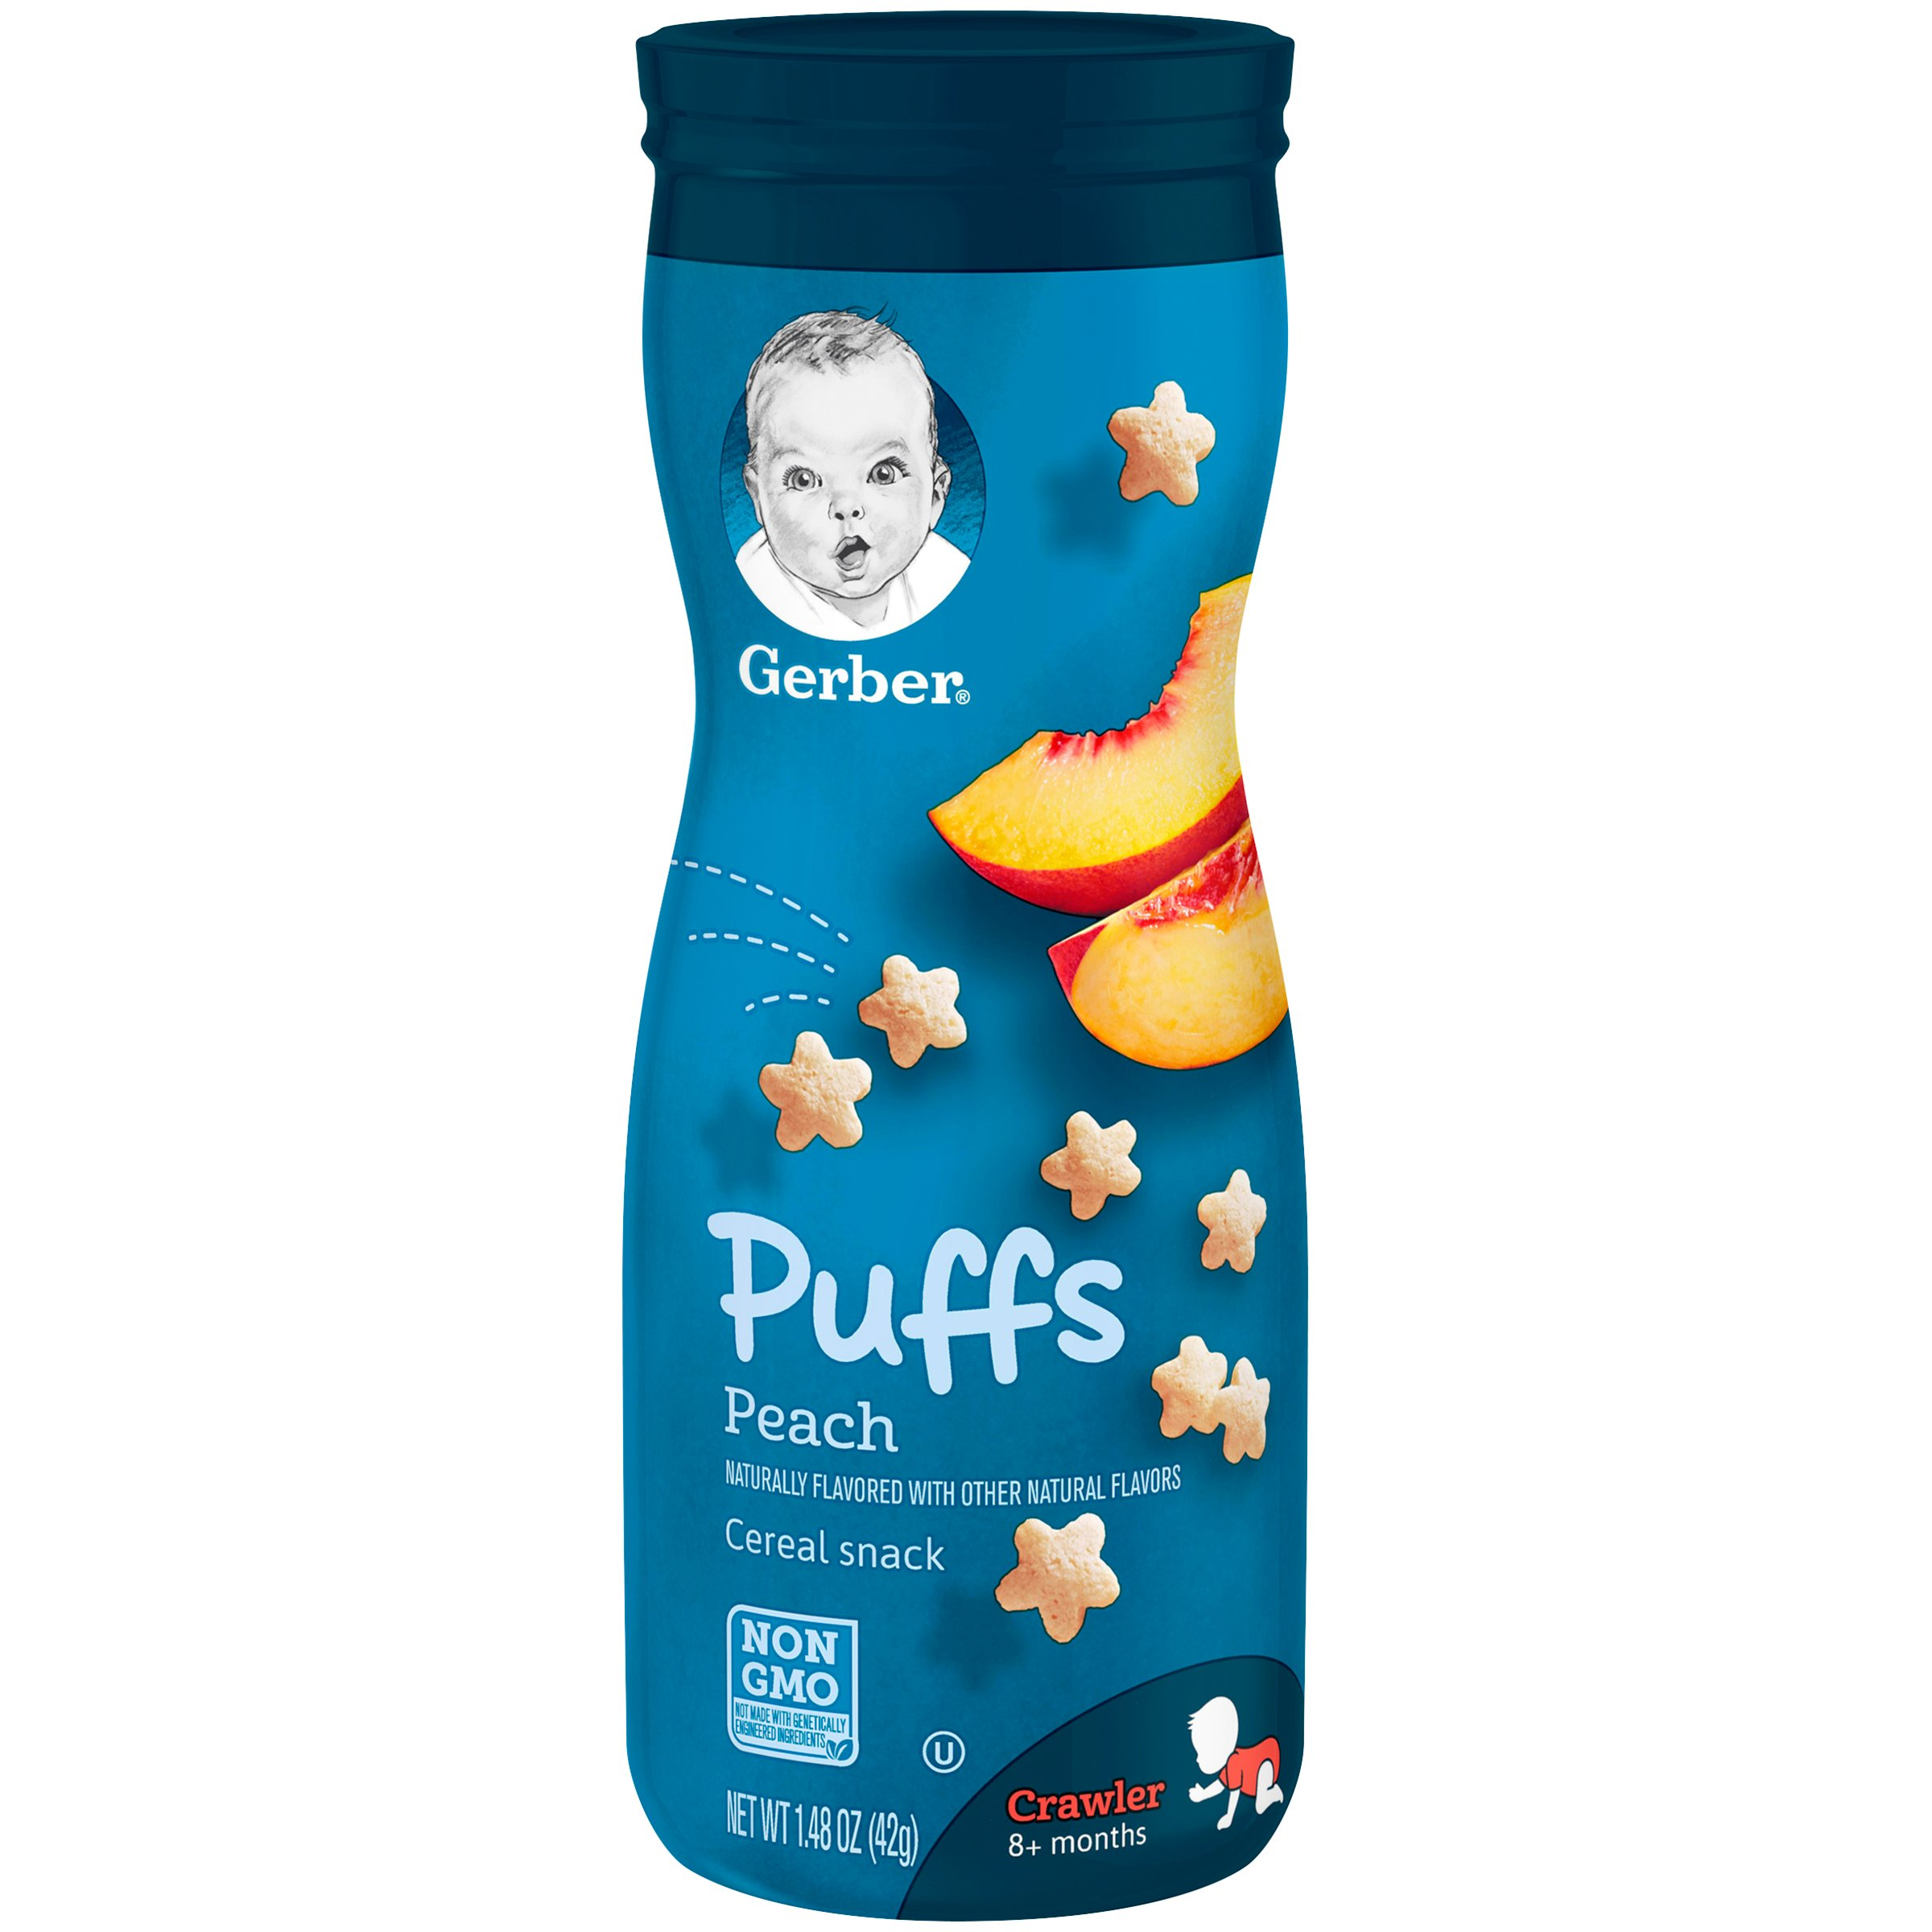 Gerber Puffs Cereal Snack, Peach, 1.48 Ounce, 6 Count by Gerber